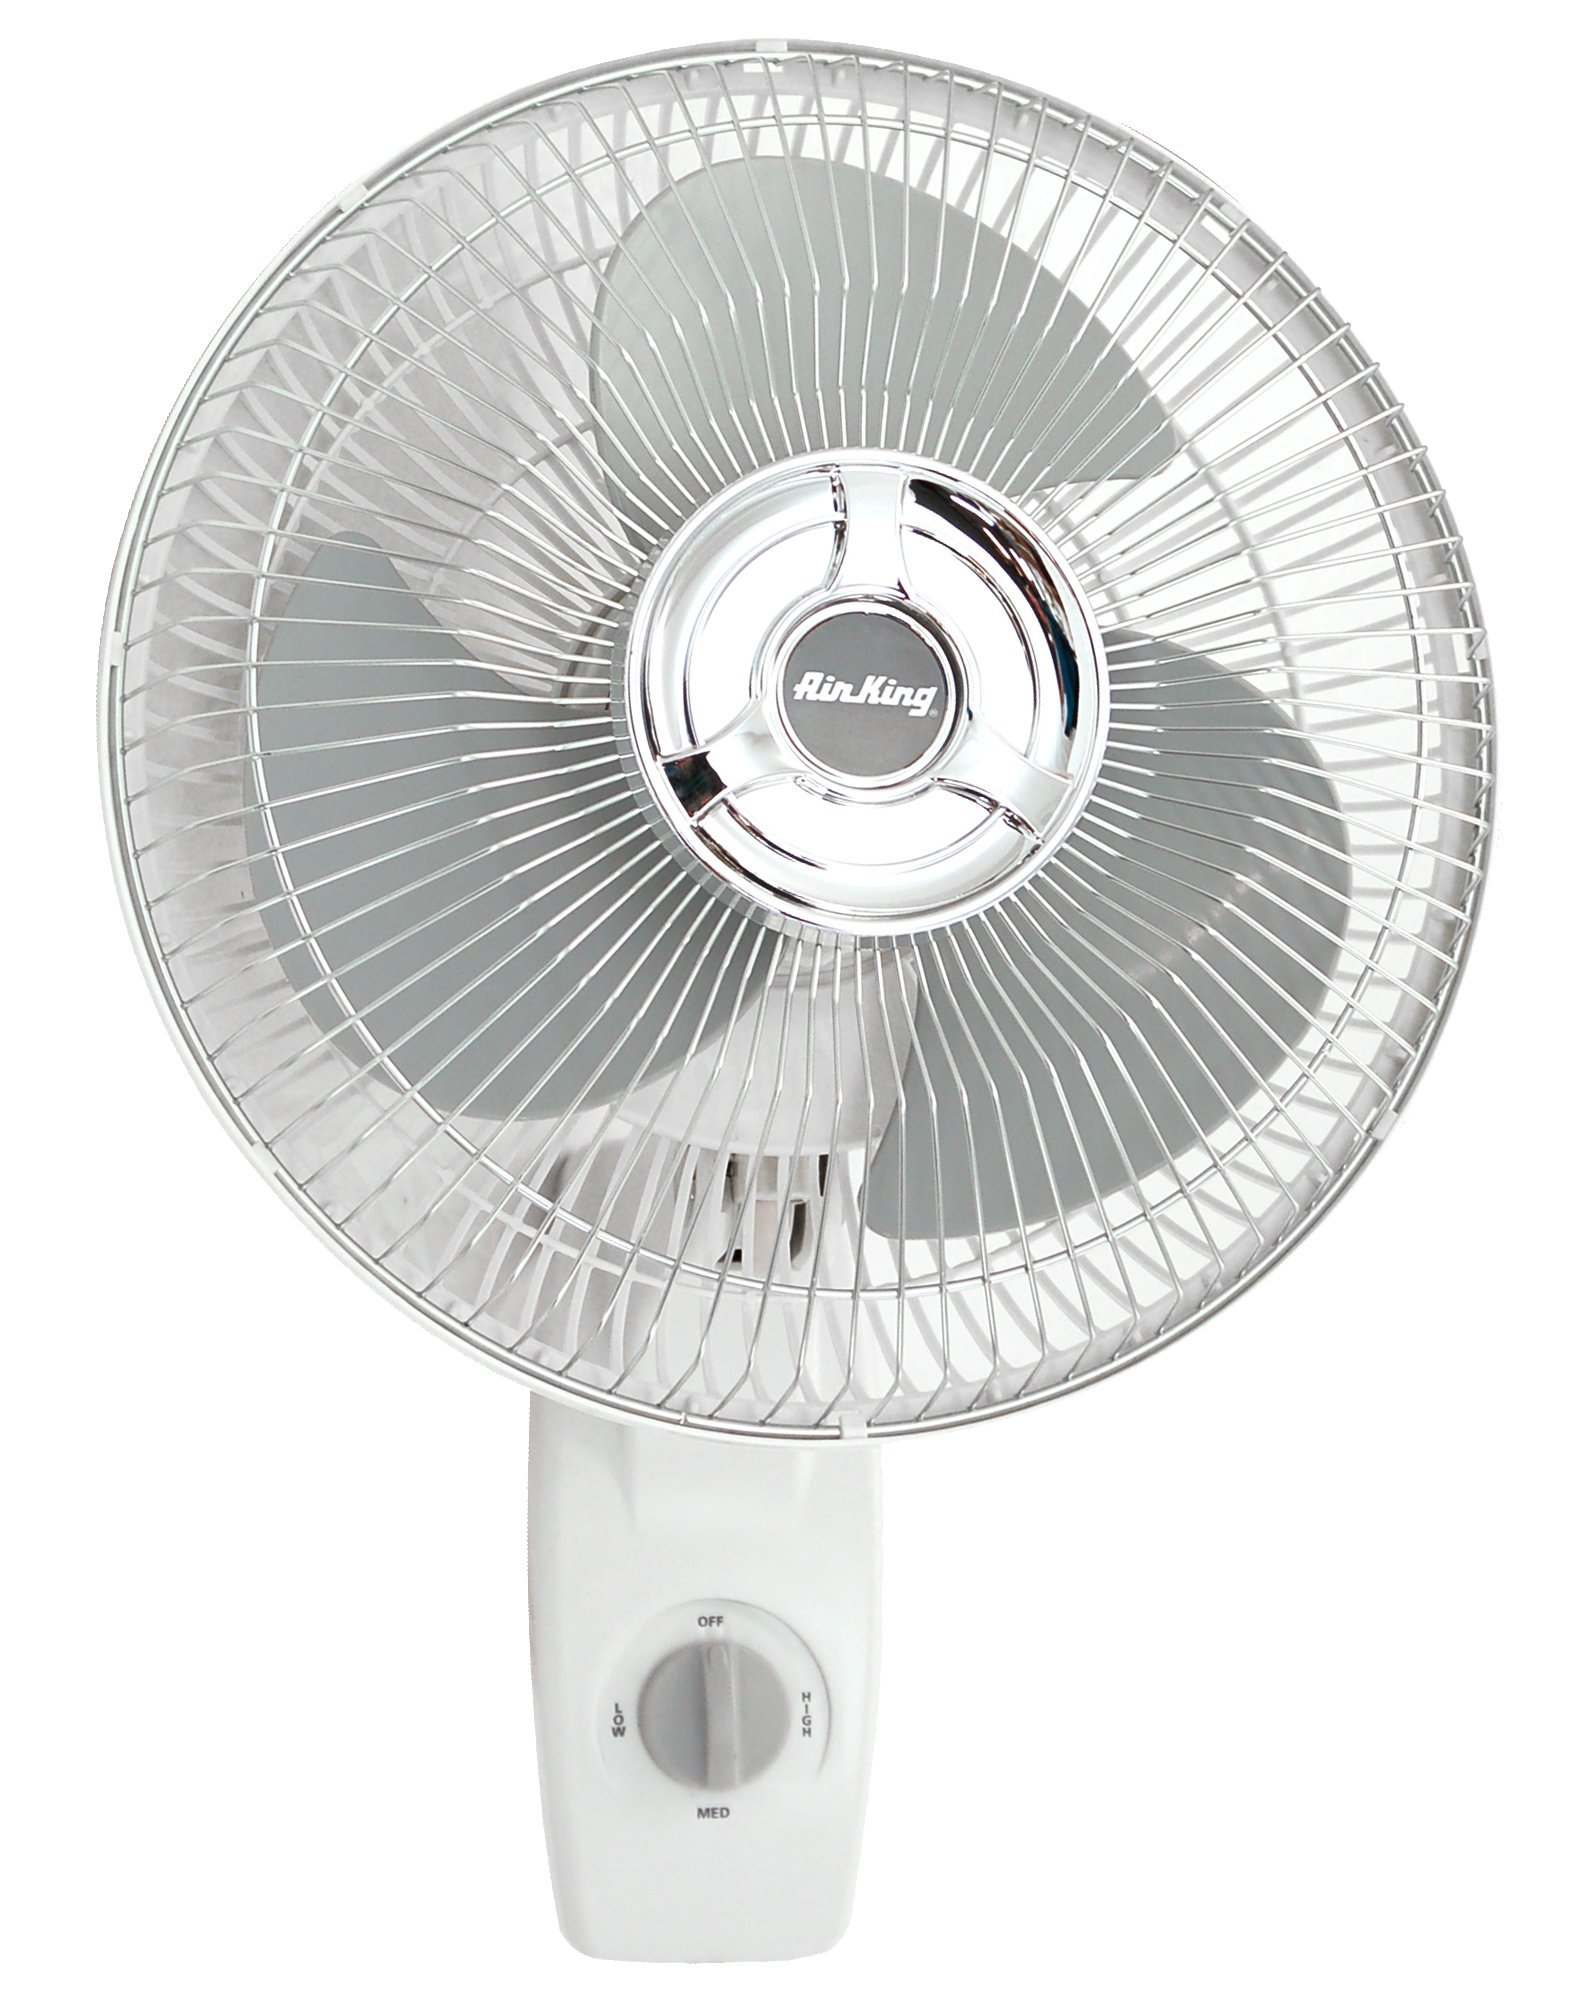 Air King 9012 Commercial Grade Oscillating Wall Mount Fan, 12-Inch